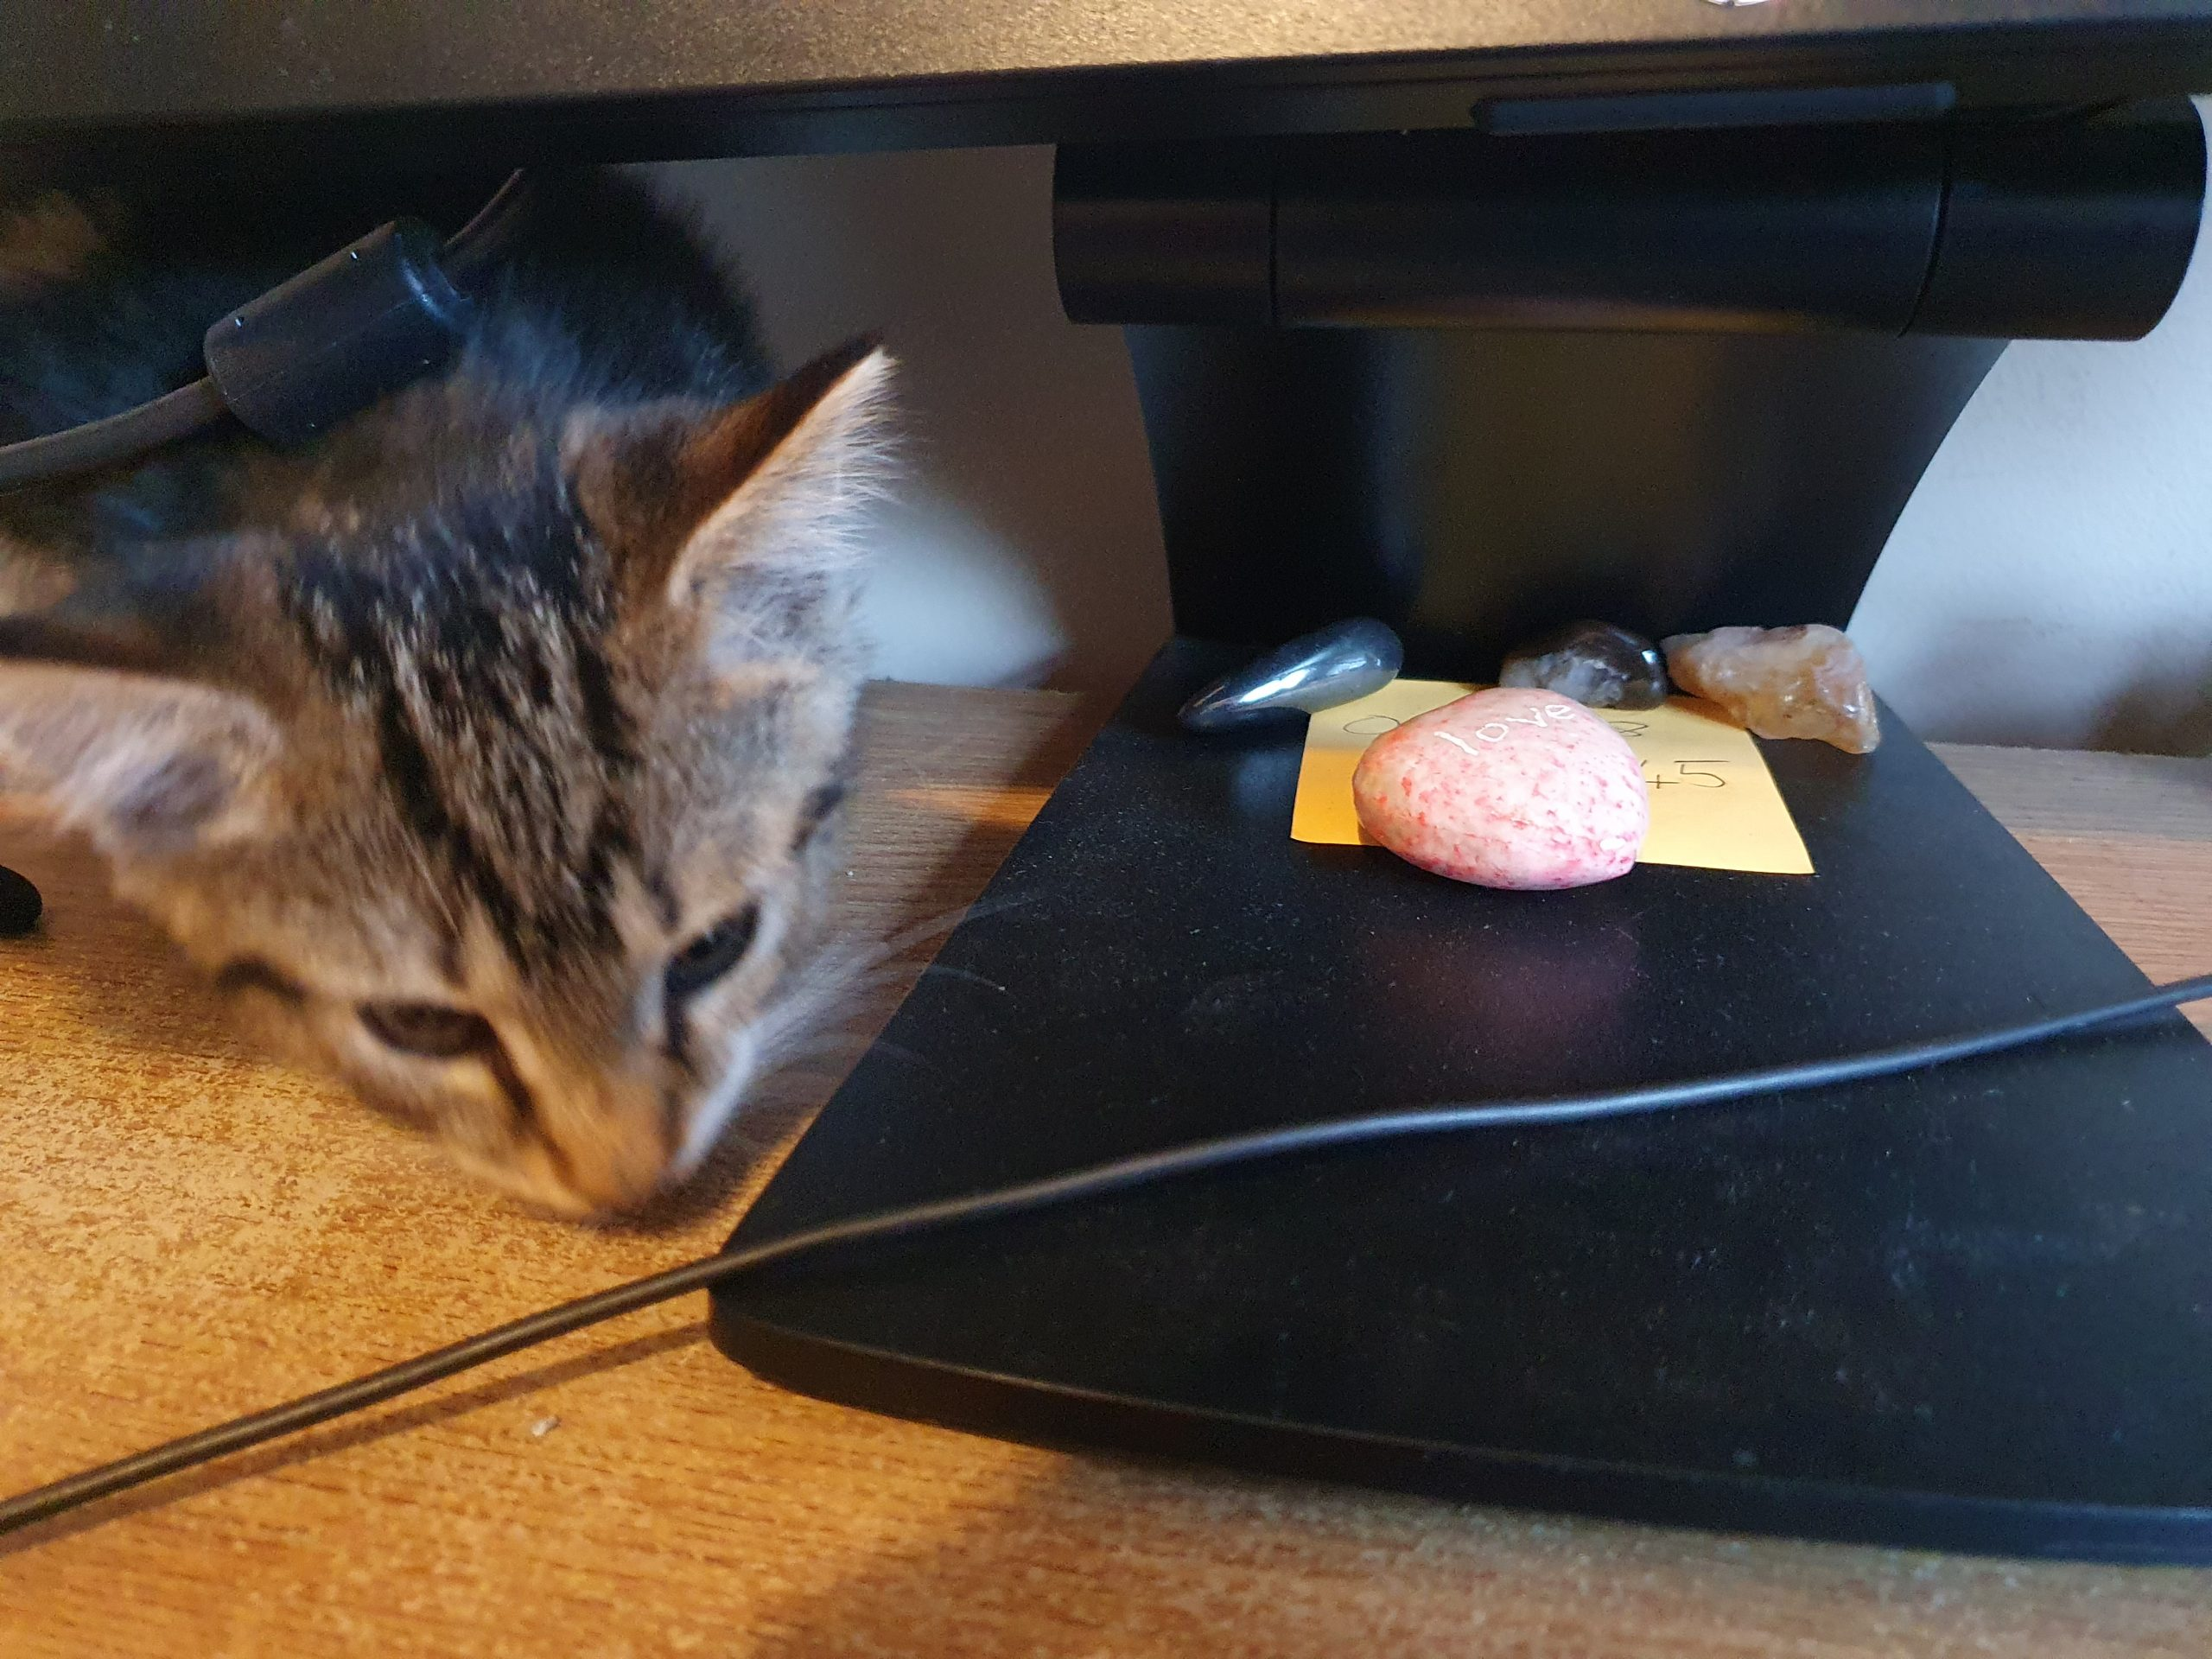 Tabby kitten facing camera, next to monitor stand with some decorative stones and the Chrysalis phone number on a post it on it.